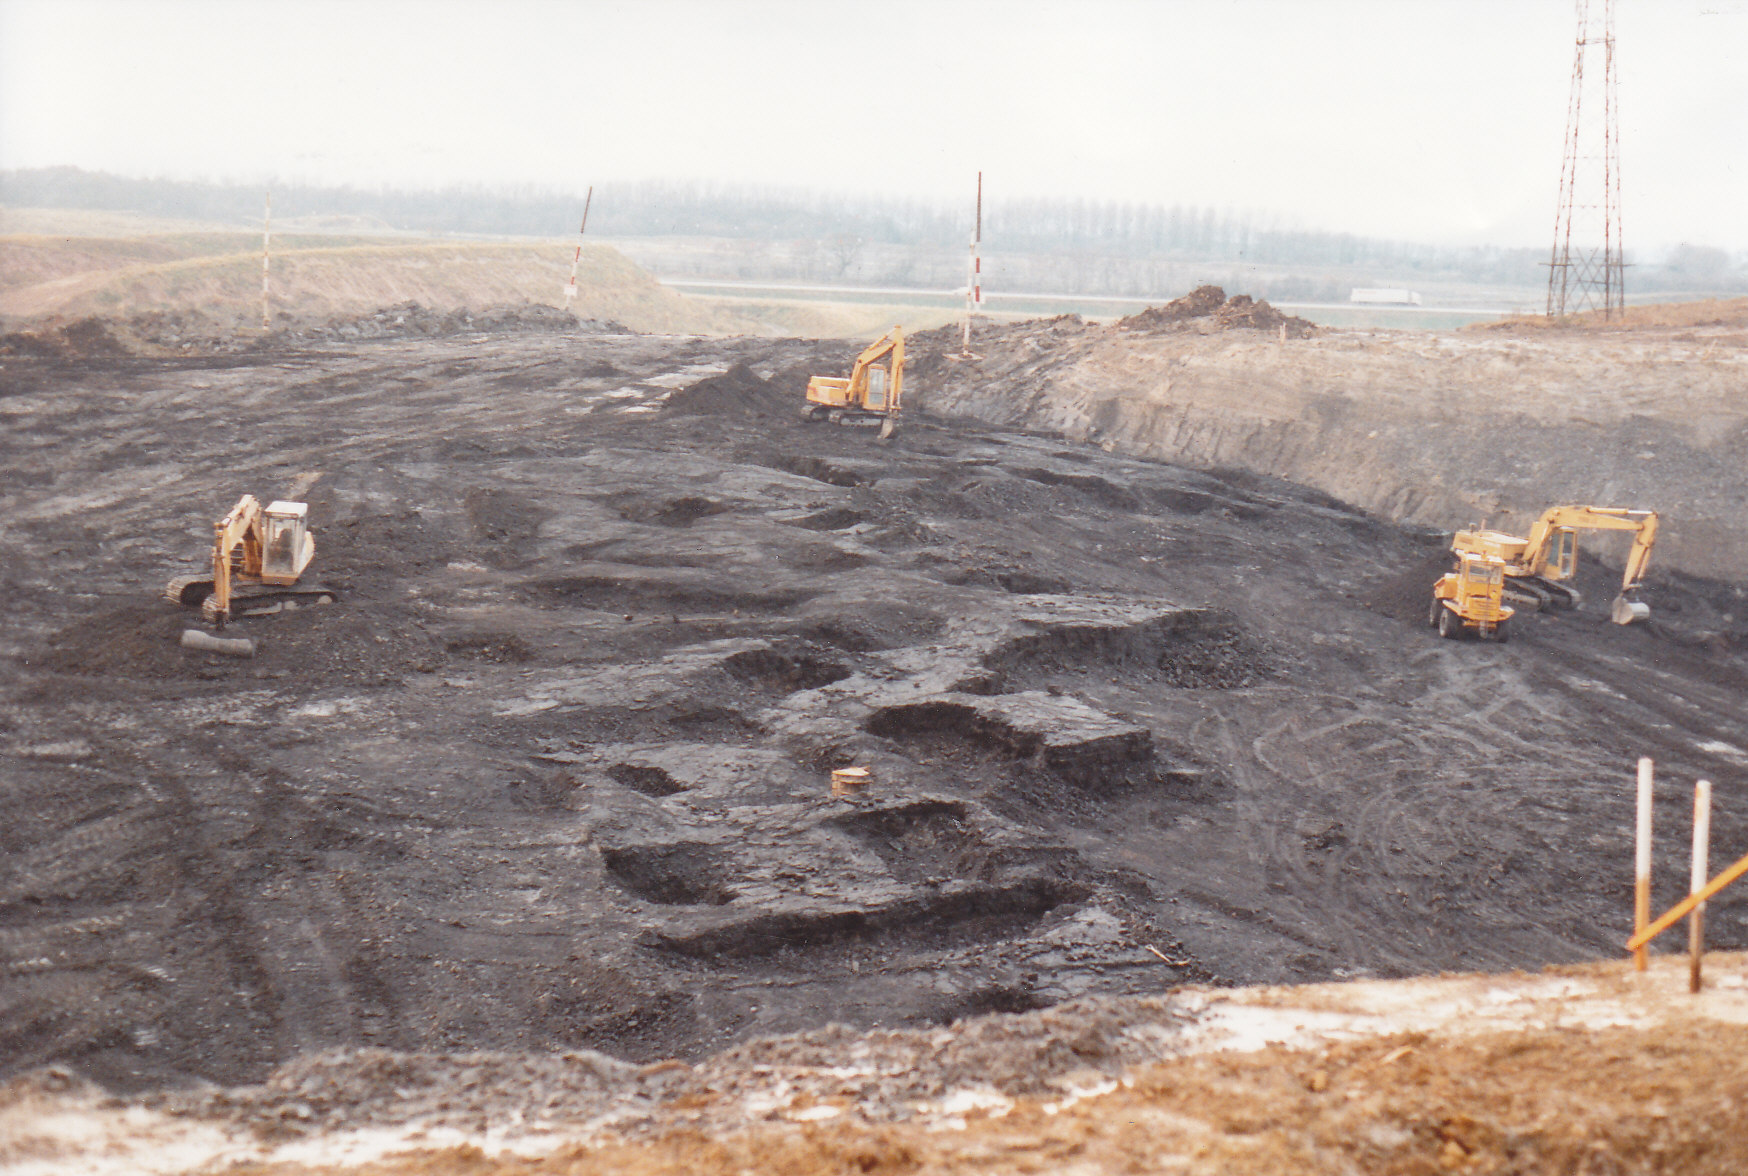 A photo of an open cast mine being excavated by diggers and trucks. In the center can be seen a series of passages and spaces which have been exposed by the digging.